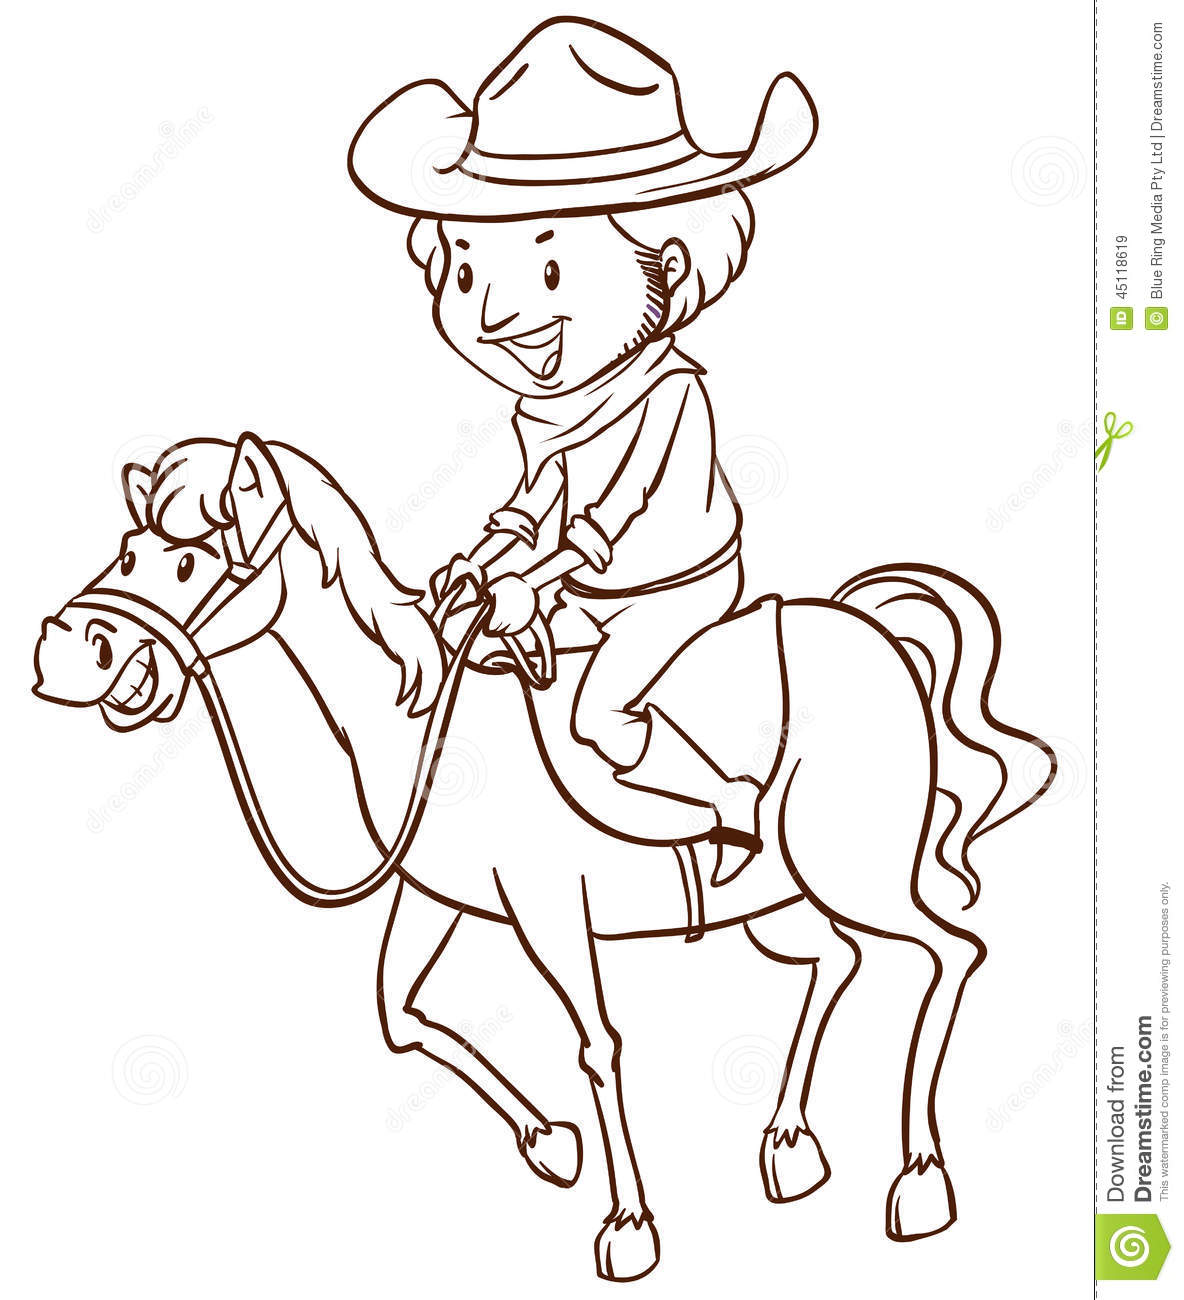 how to draw a cowboy for kids